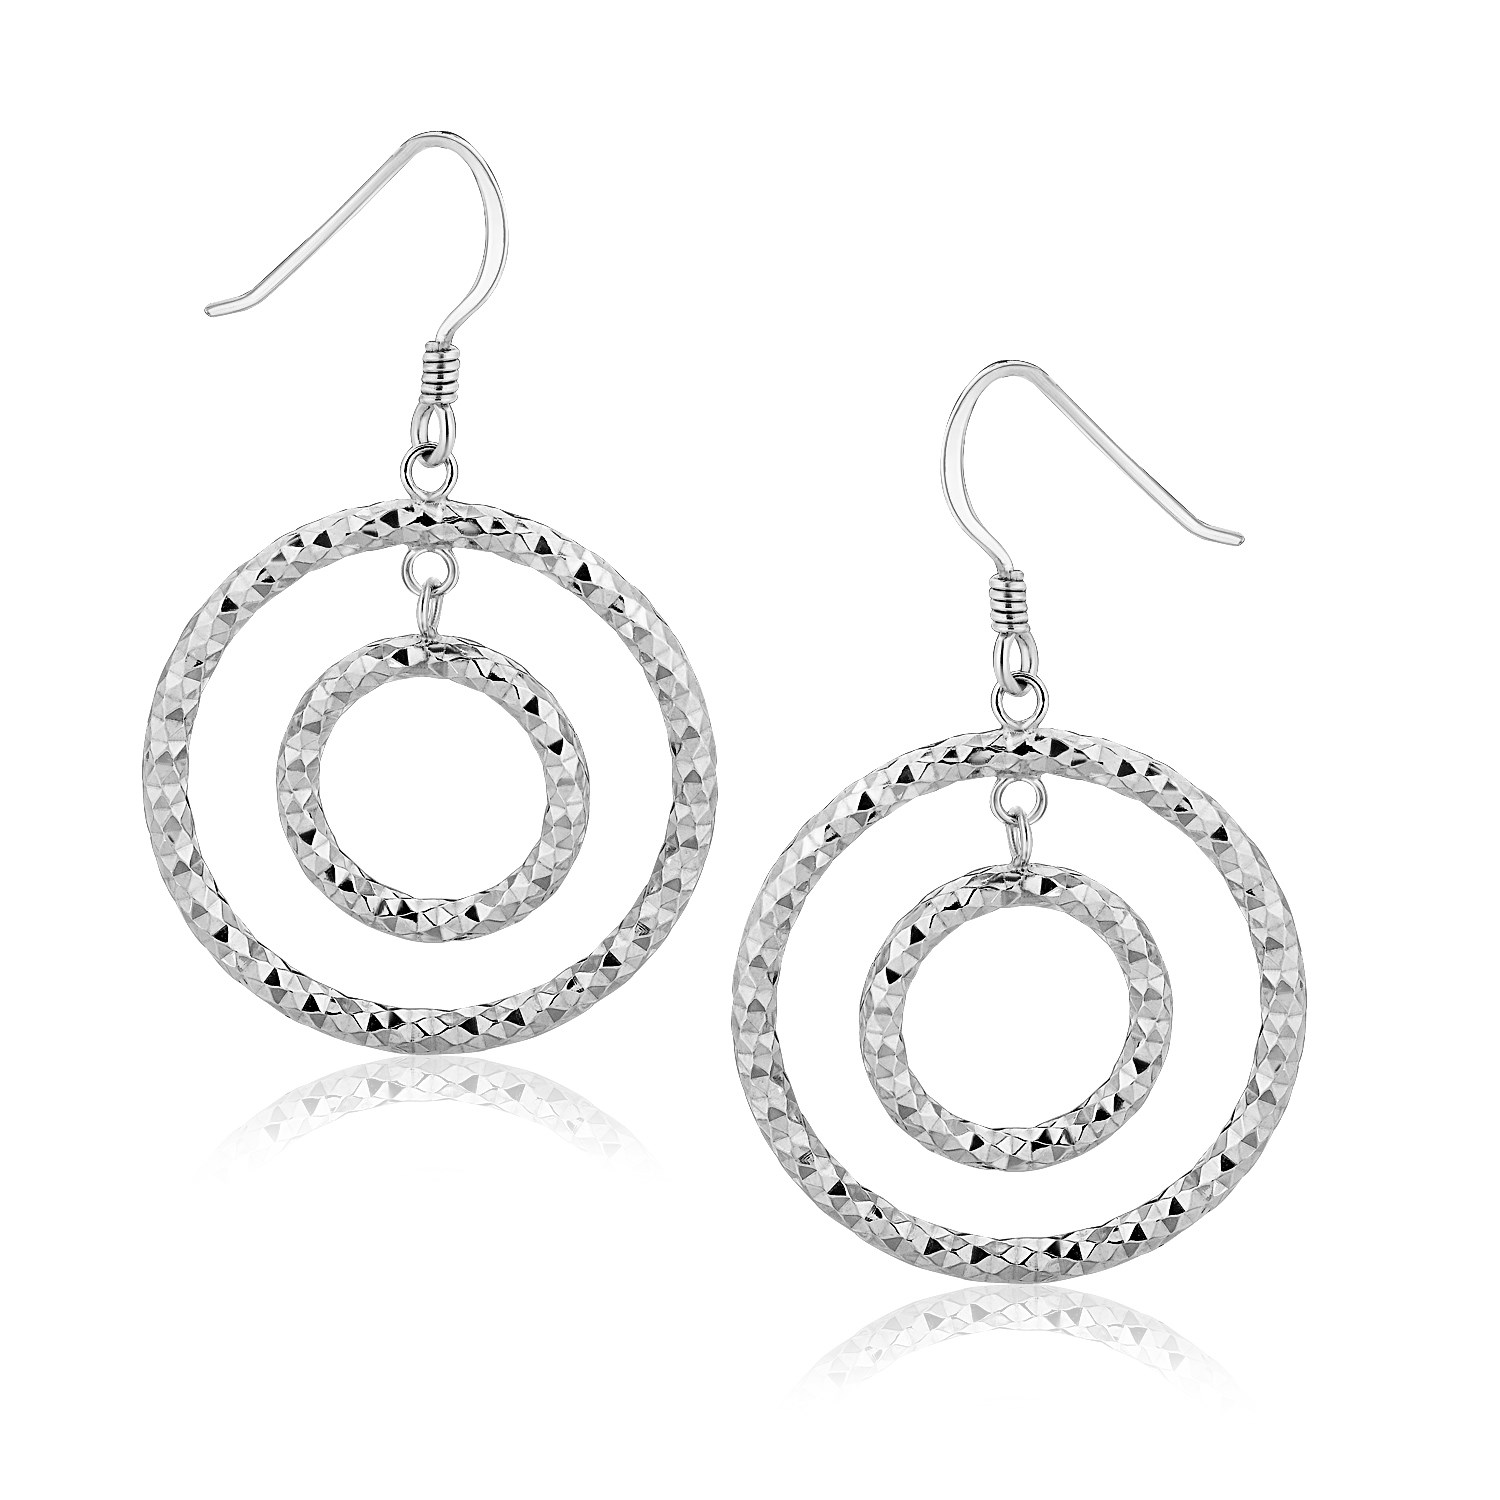 Concentric Circle Earrings: Textured Concentric Circle Style Drop Earrings In Sterling